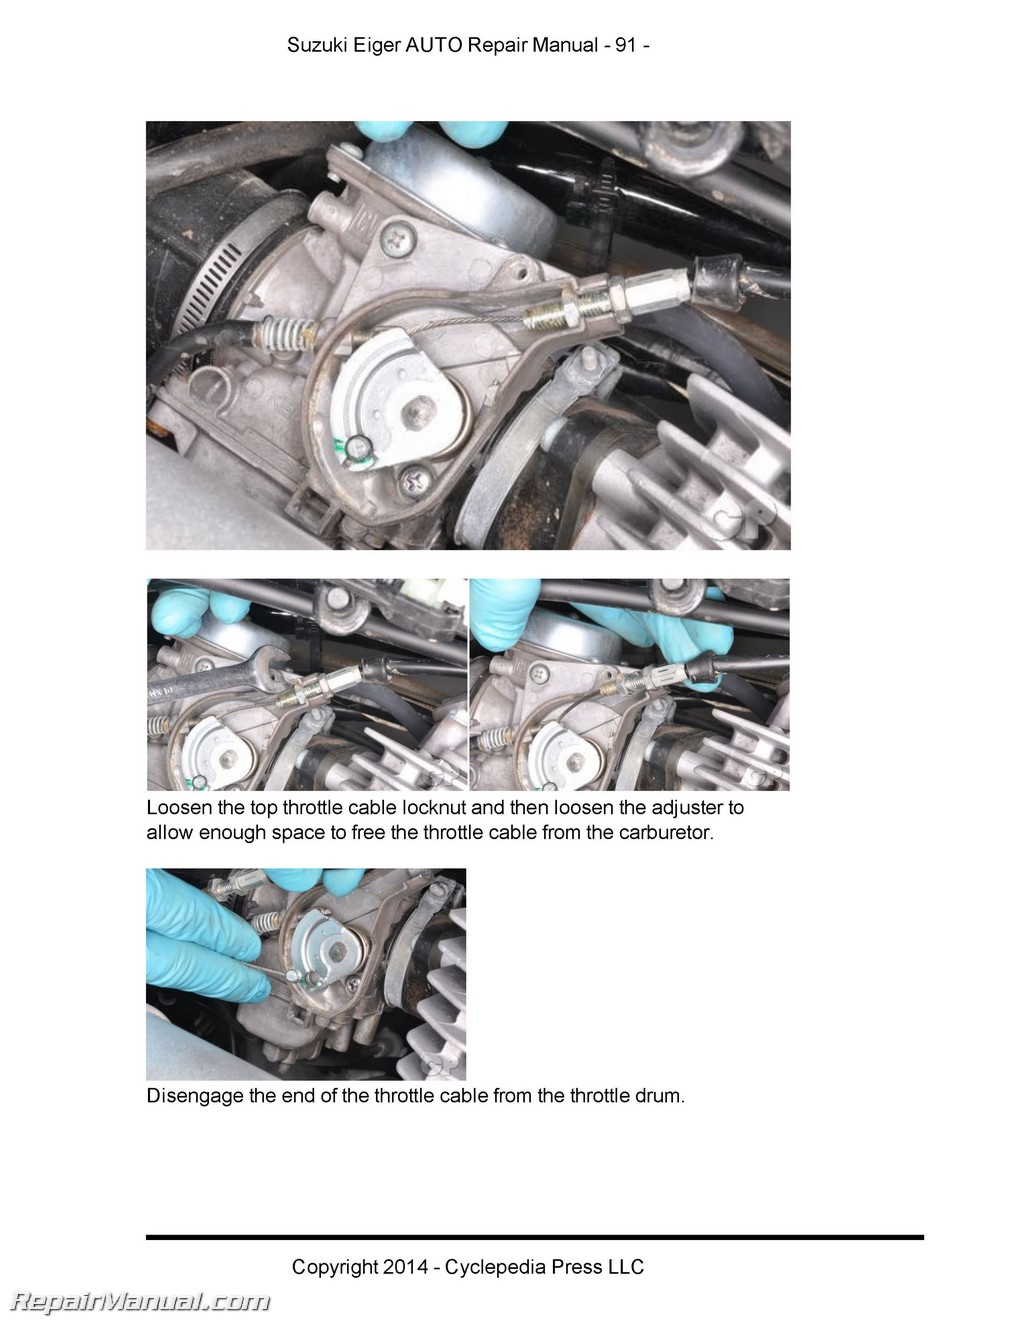 2005 suzuki eiger 400 wiring diagram typical 05 parts  for free